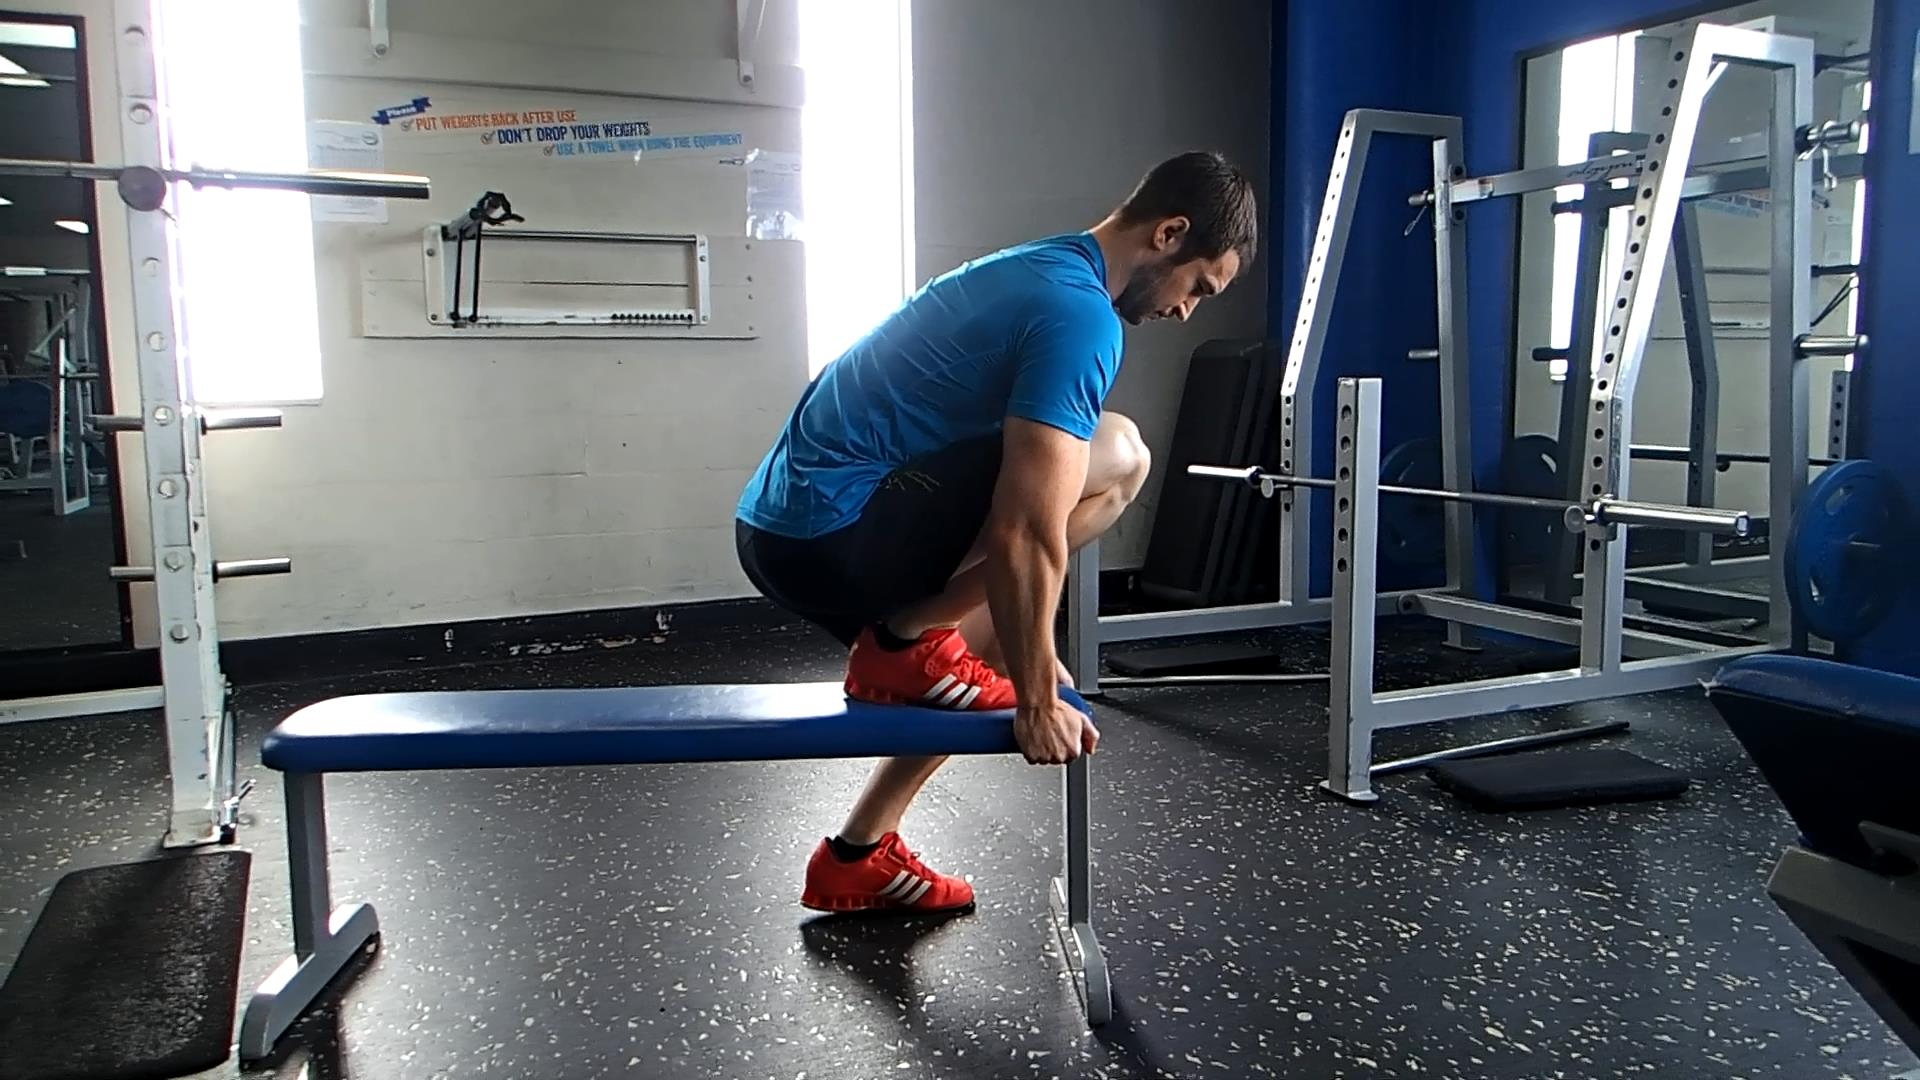 4 - Elevated Forced Ankle Mobility